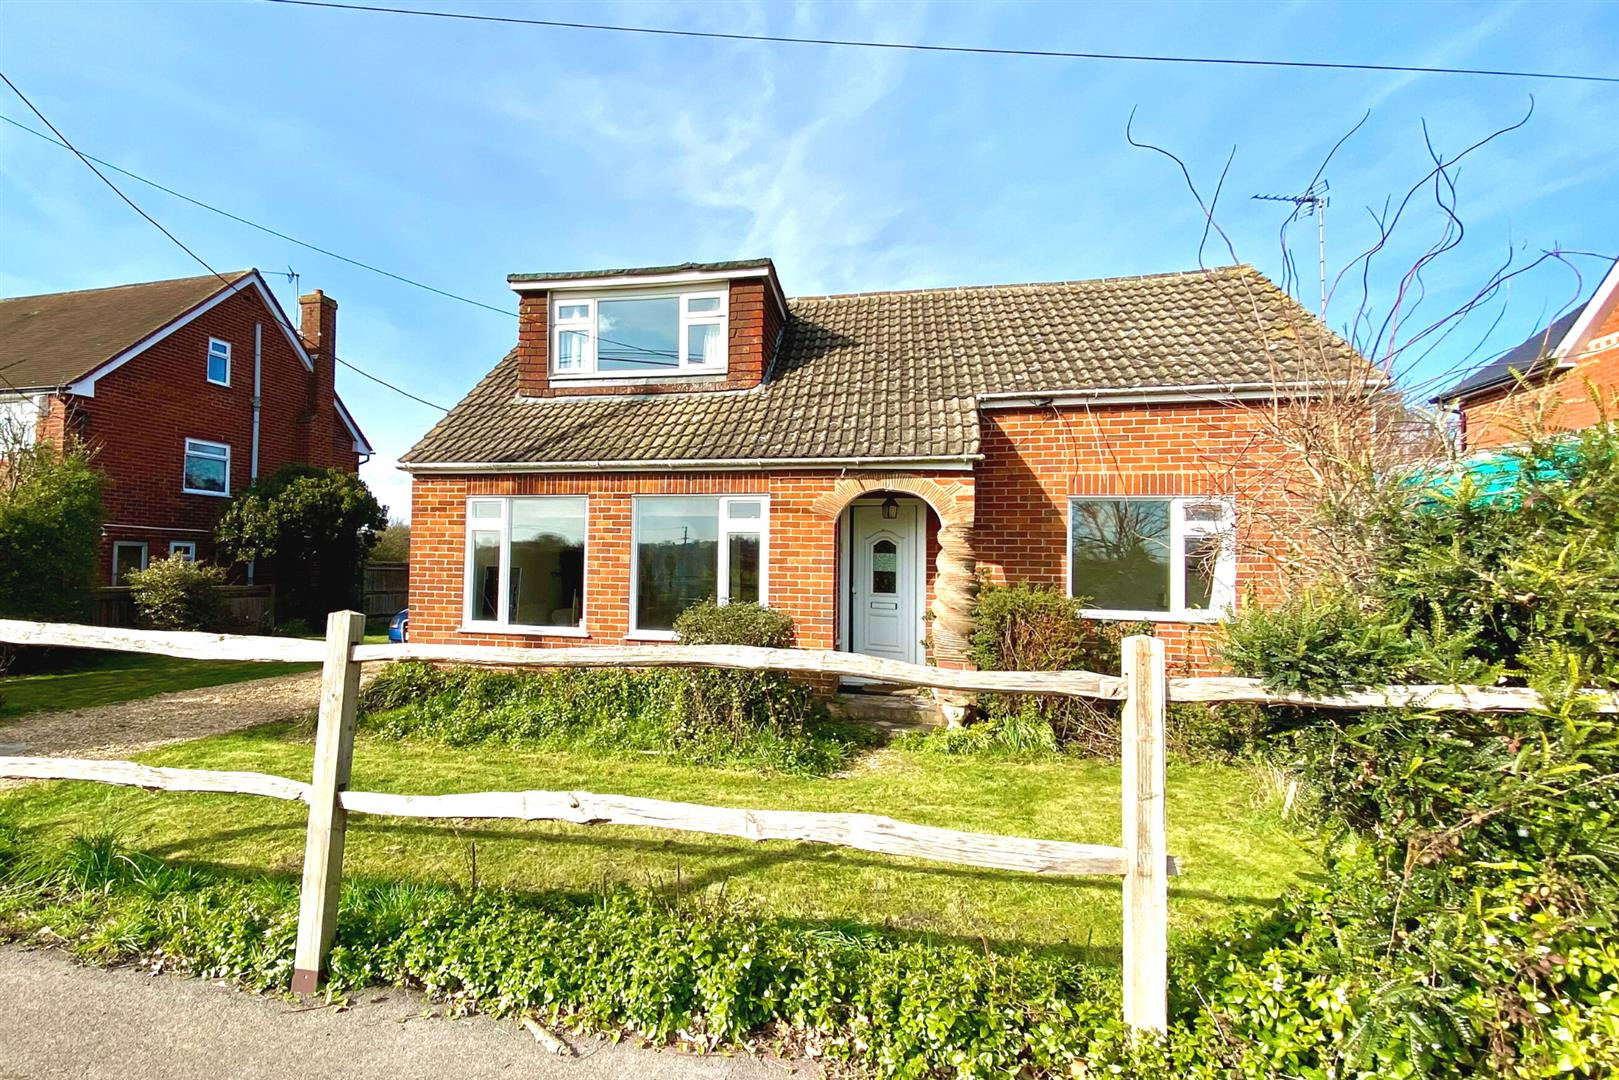 3 bed detached for sale in Three Mile Cross, RG7